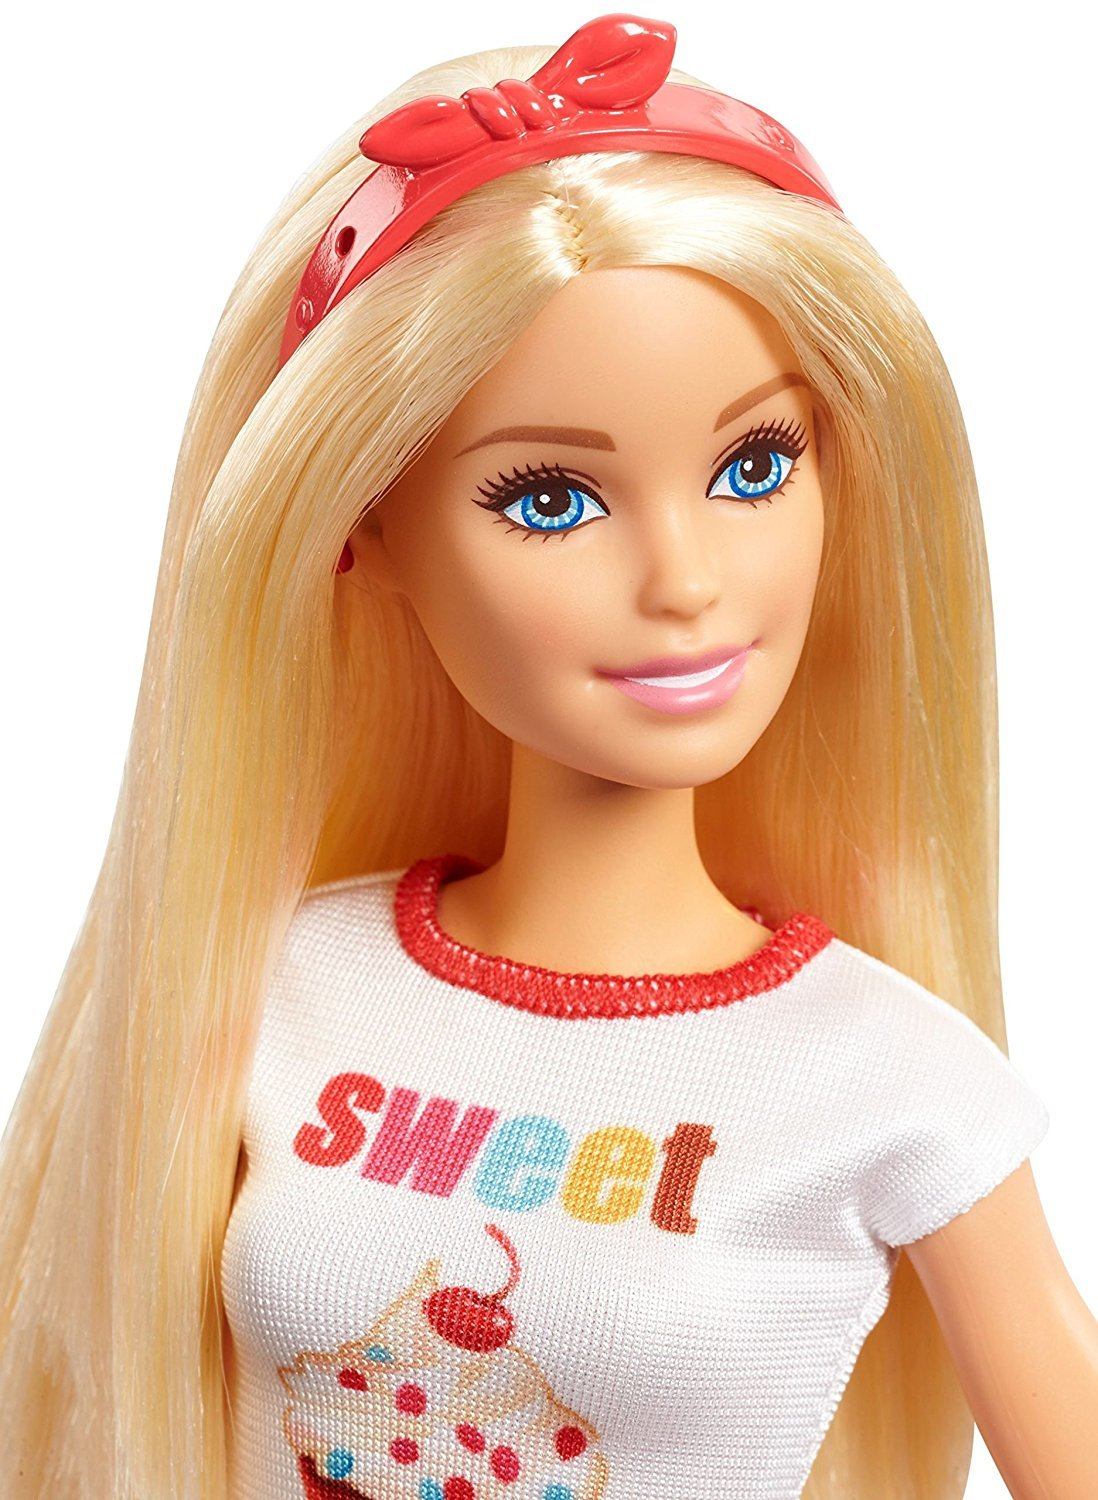 Barbie: Bakery Chef - Doll & Playset image